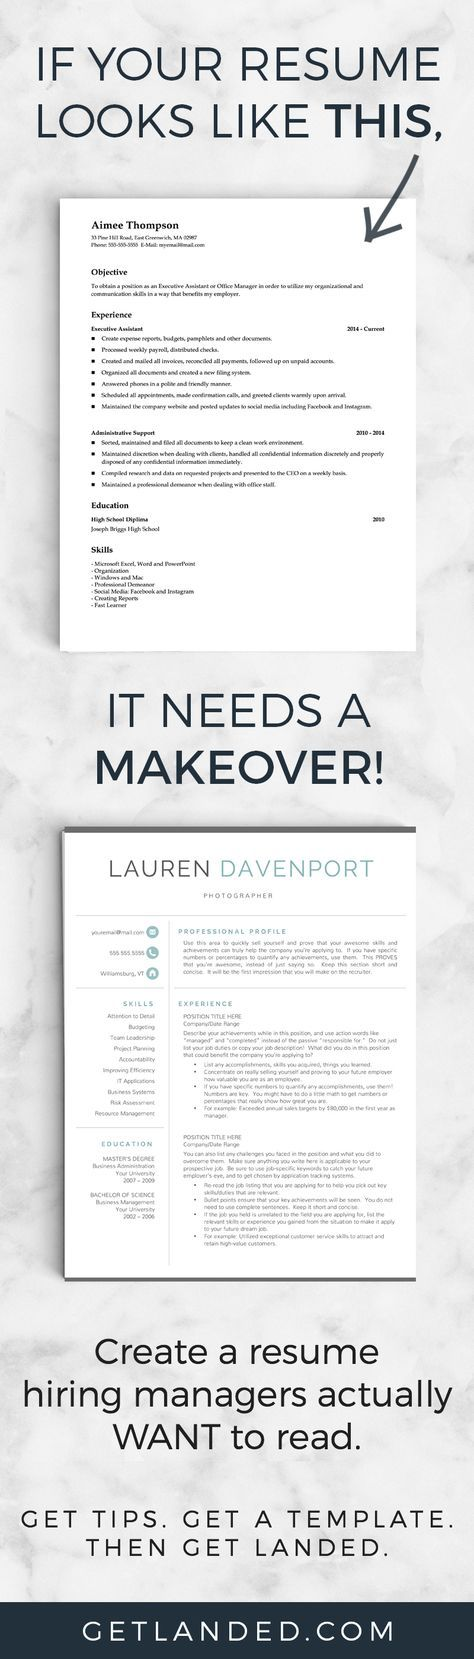 80 of candidates desperately need a resume makeover! Get a resume - campsite manager sample resume